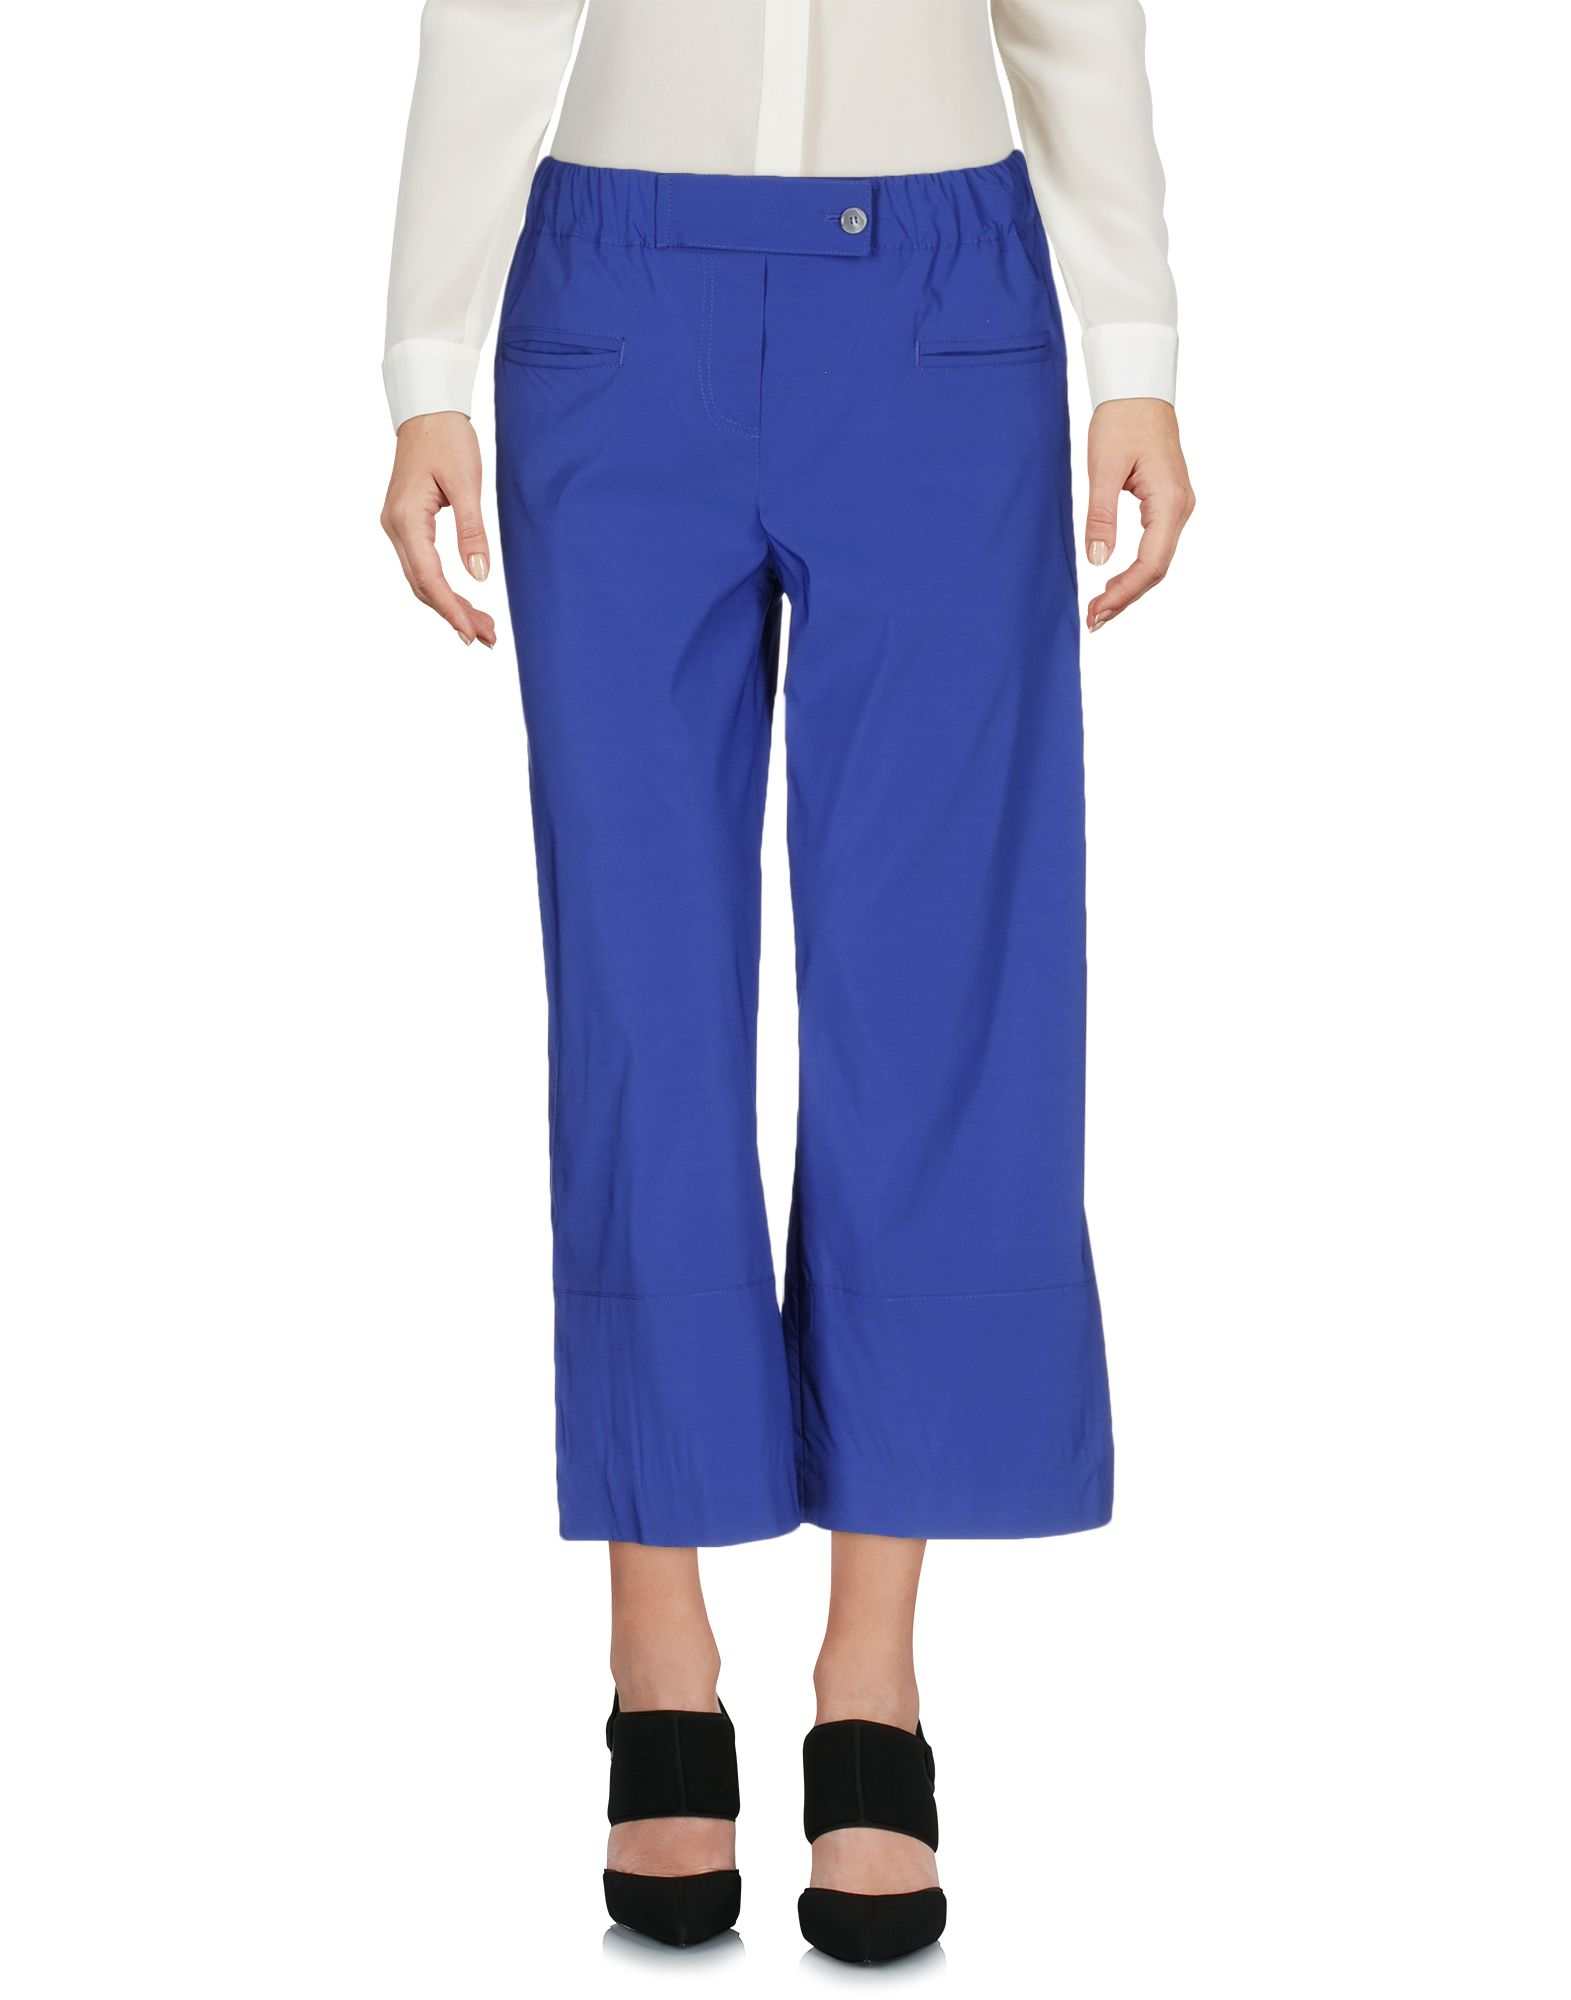 ATOS LOMBARDINI Cropped Pants & Culottes in Blue